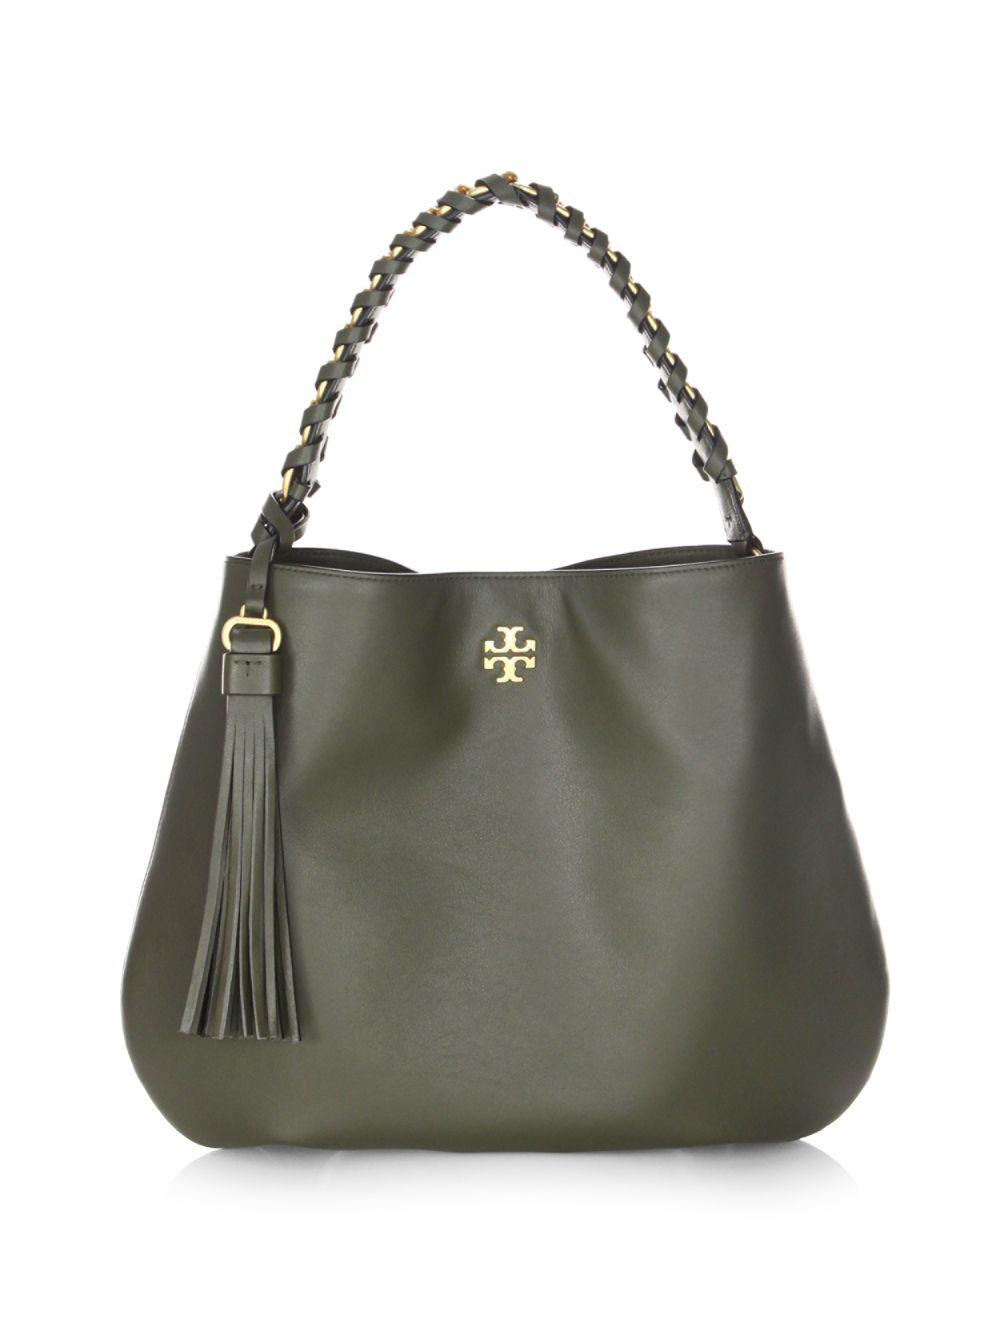 535bb2413dc Lyst - Tory Burch Brooke Leather Hobo Bag in Green